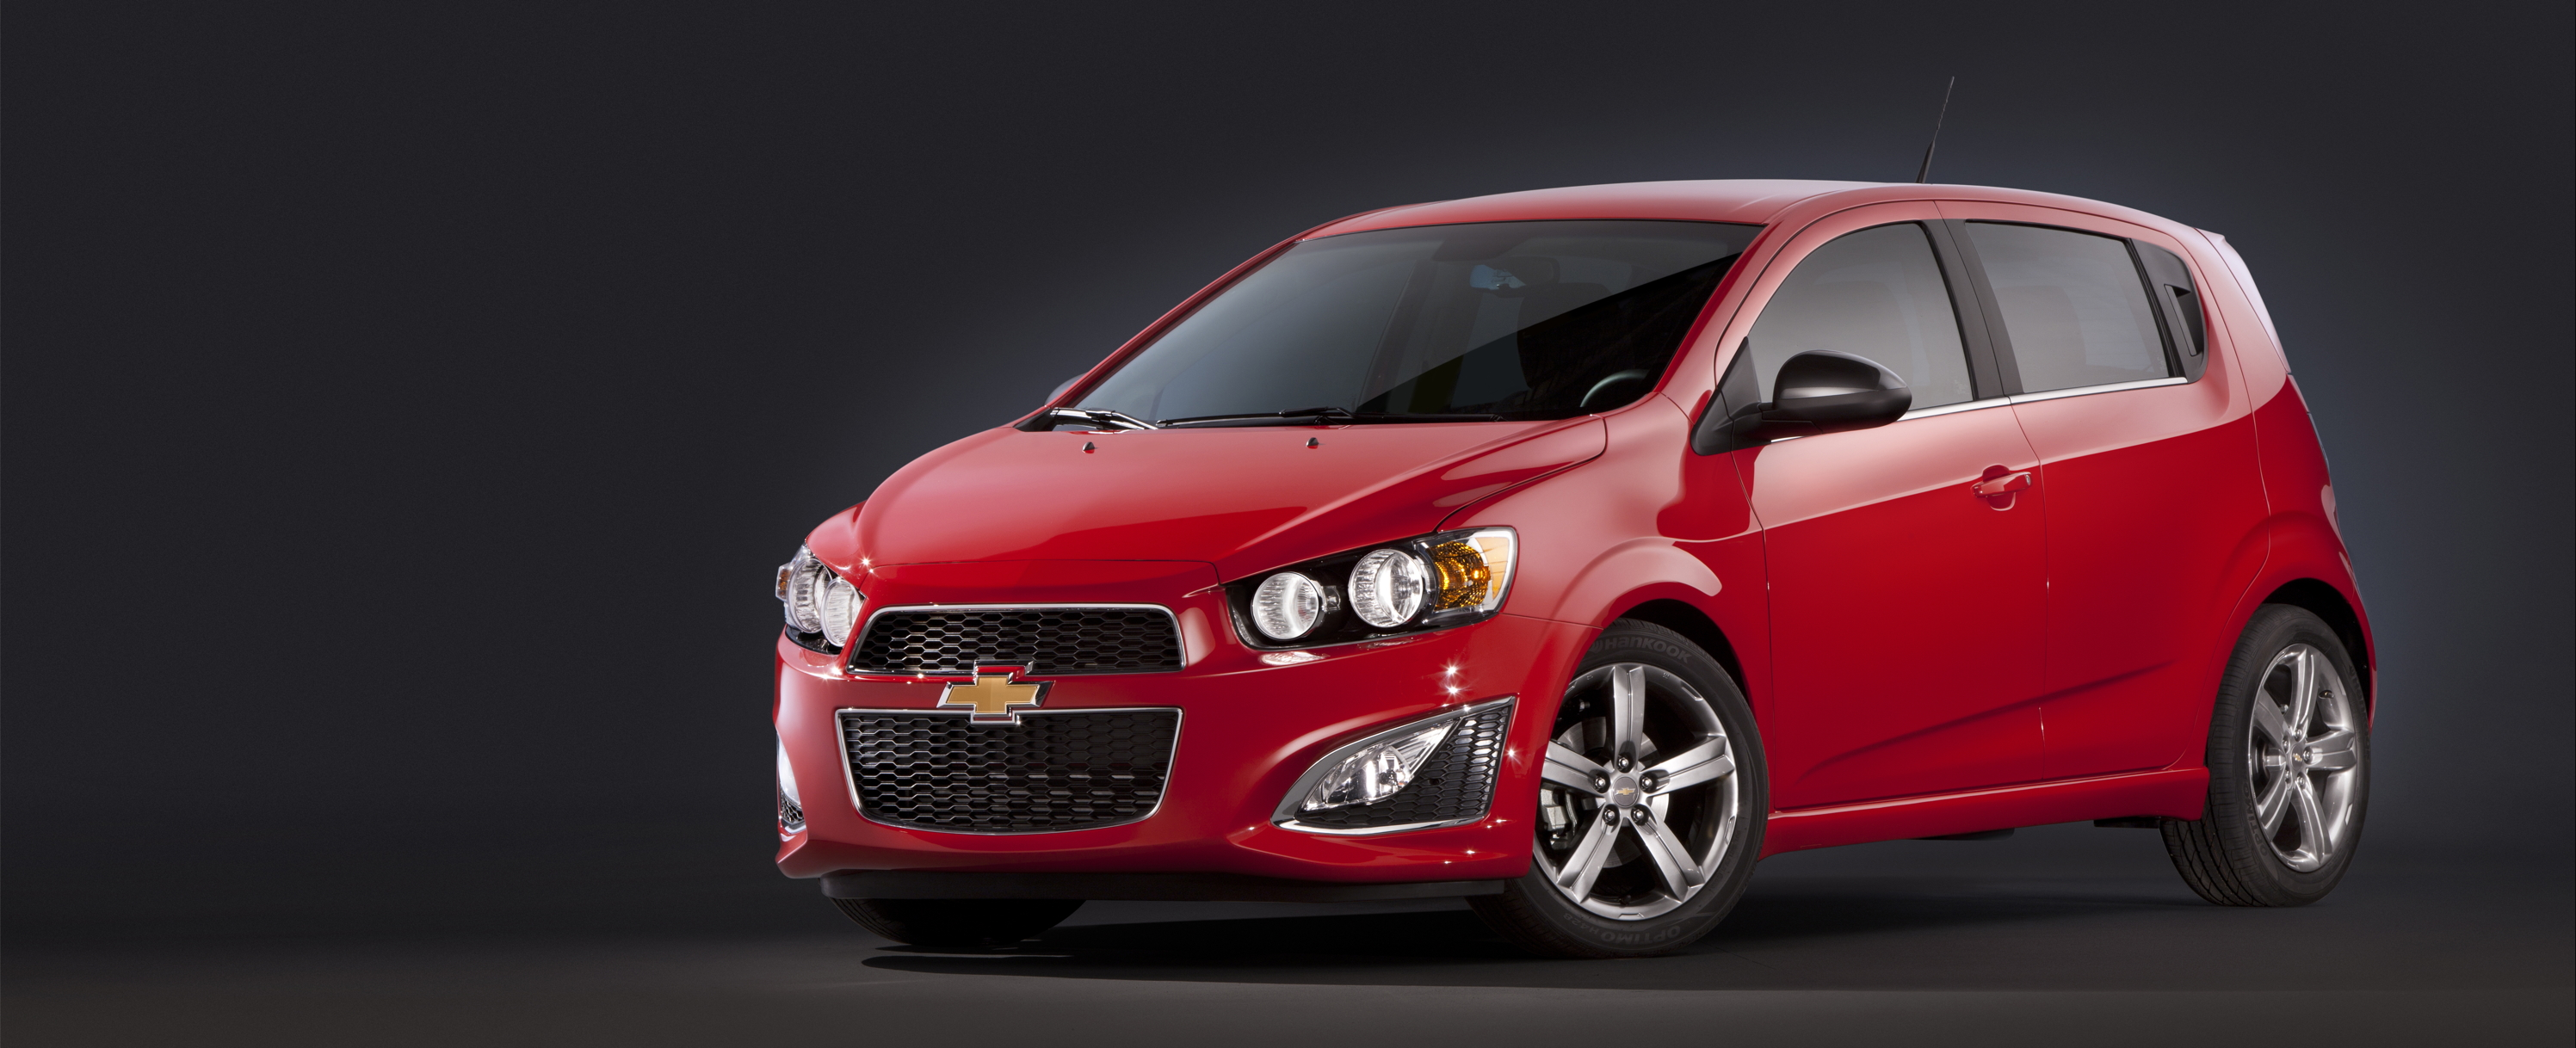 Chevrolet Pressroom - United States - Sonic RS